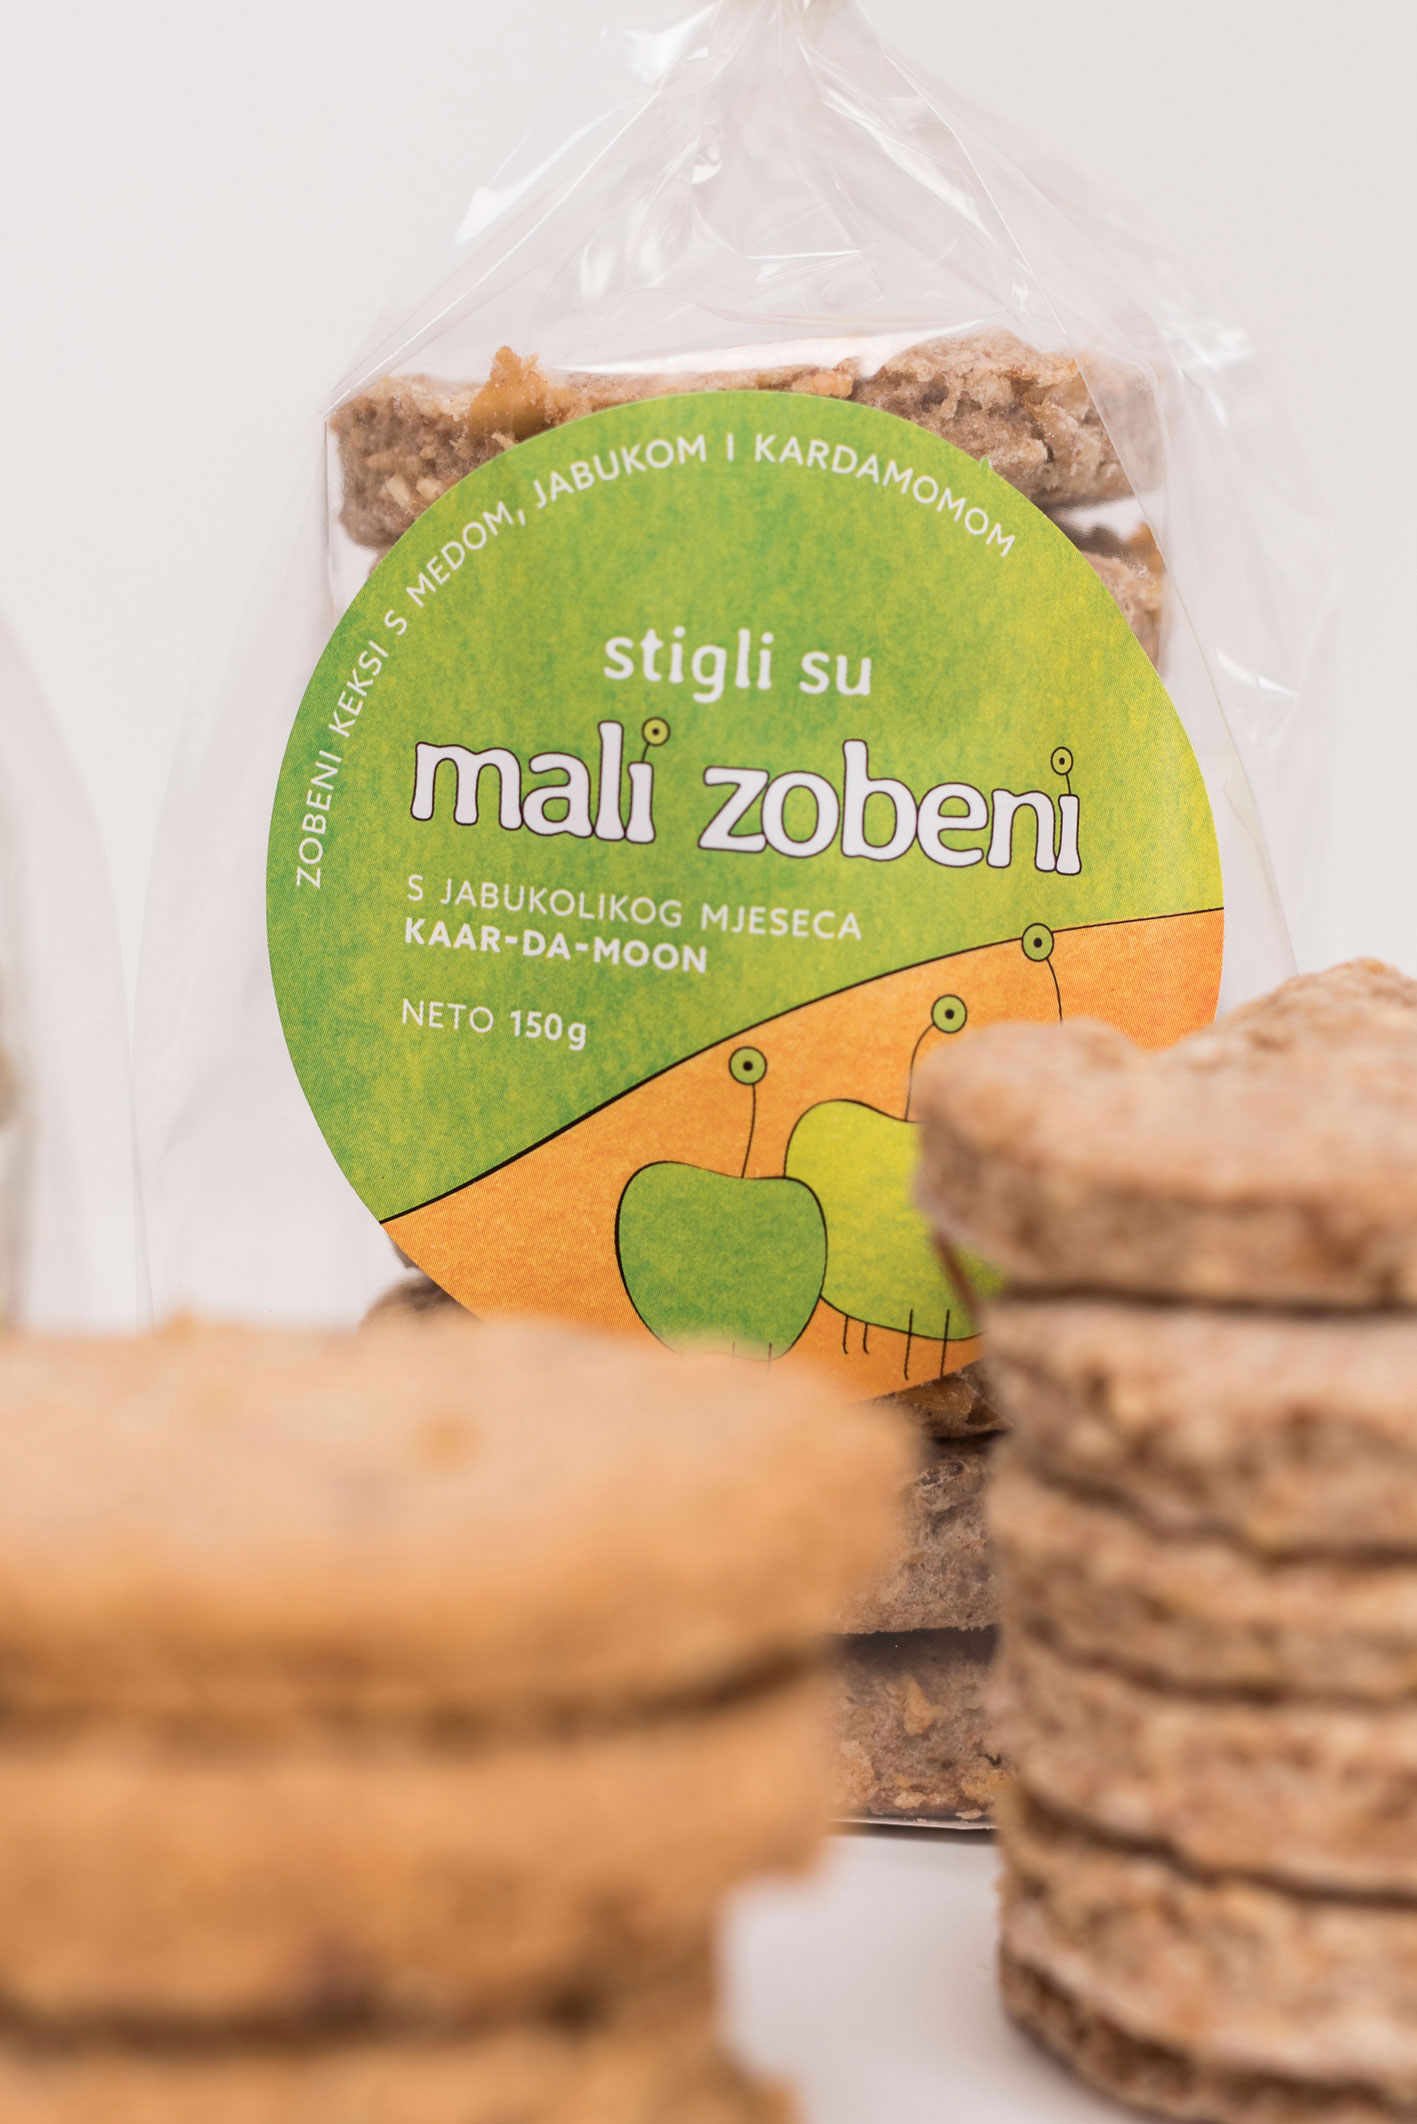 masavukmanovic.com - mali zobeni packaging 09